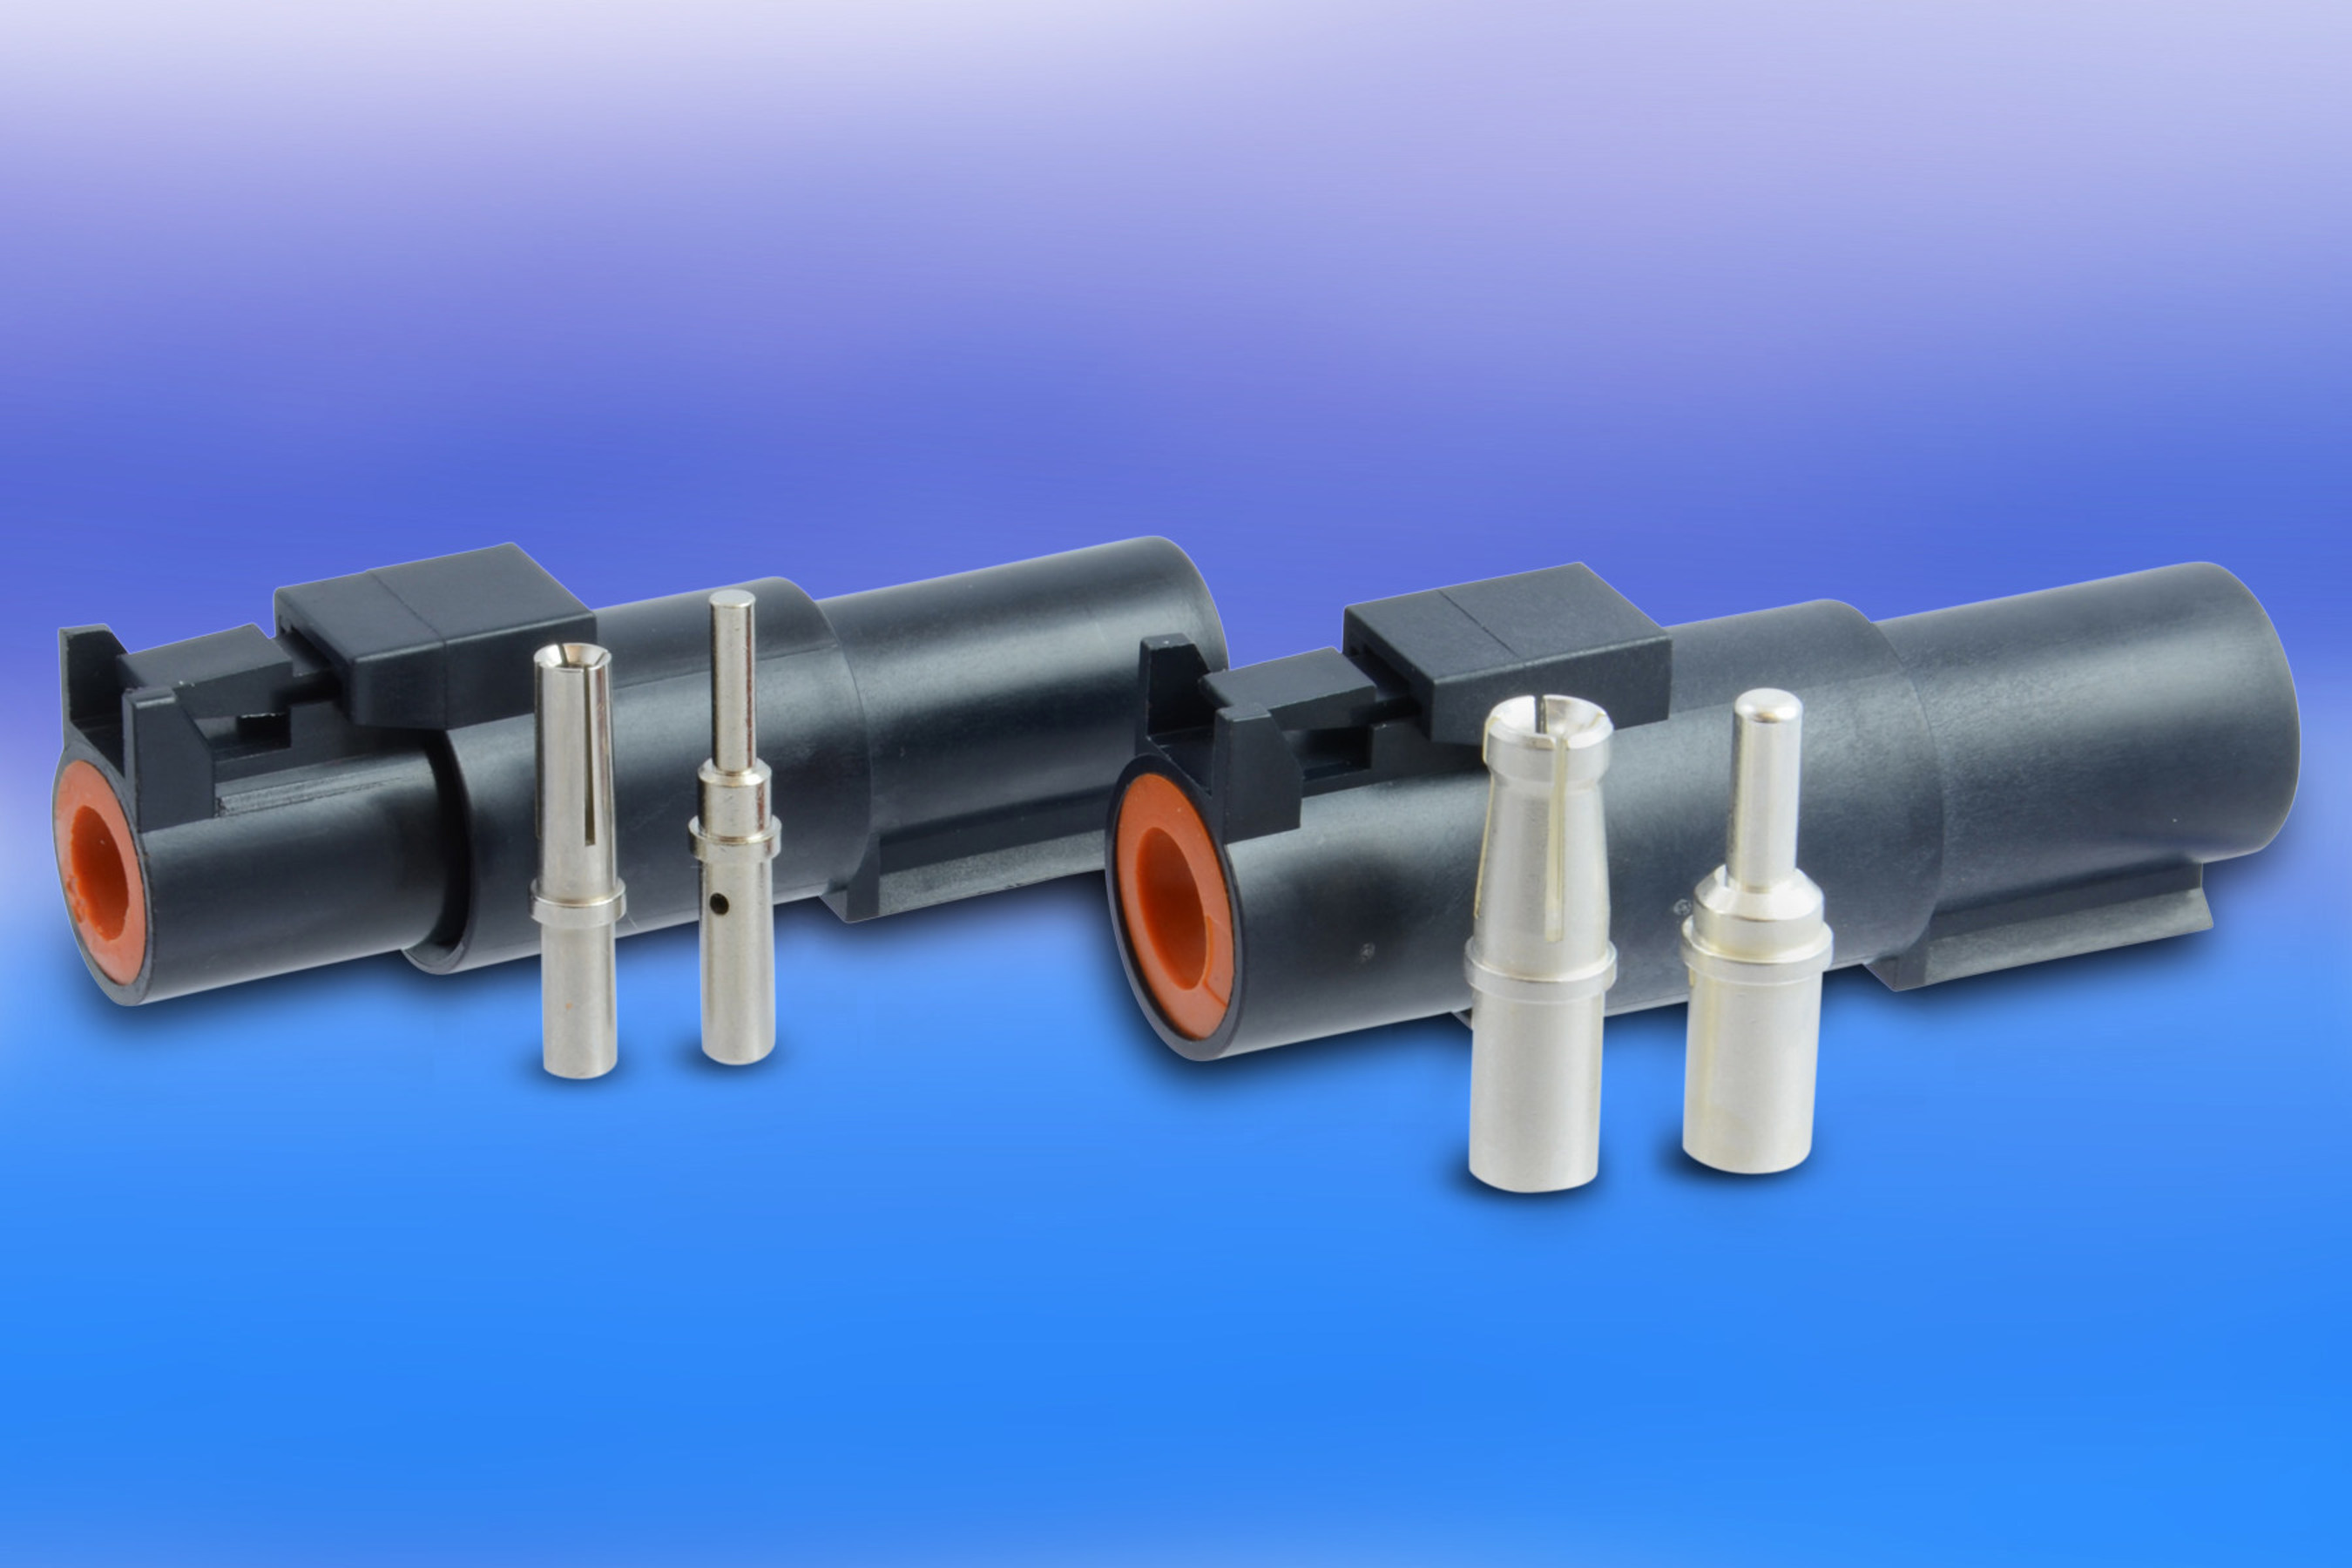 New Heavy Duty Connector Series from Amphenol for Size 8 and Size 12 Power Contacts Offer Higher Power (PRNewsFoto/Amphenol Industrial Products)